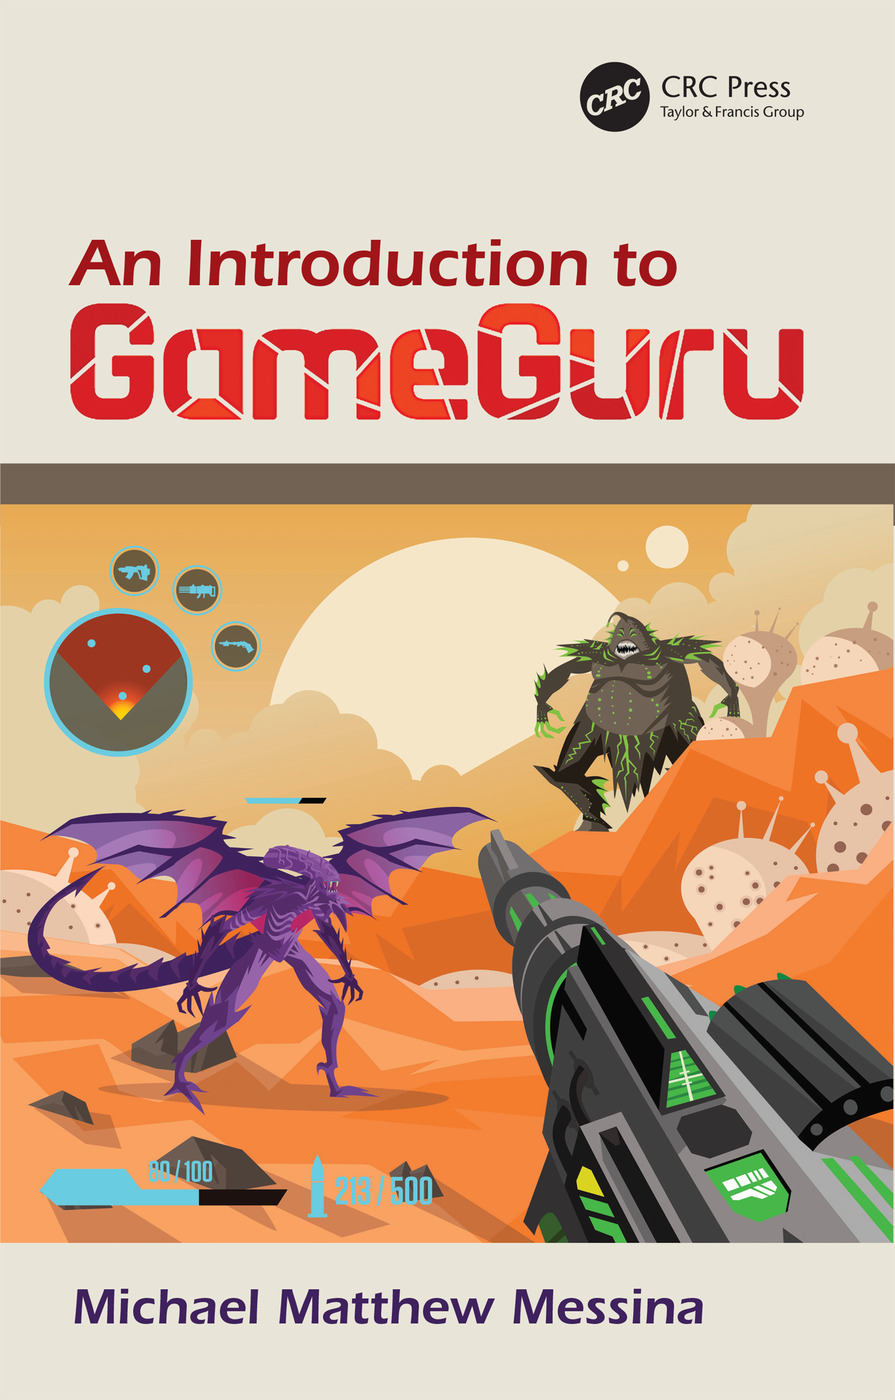 An Introduction to GameGuru book cover